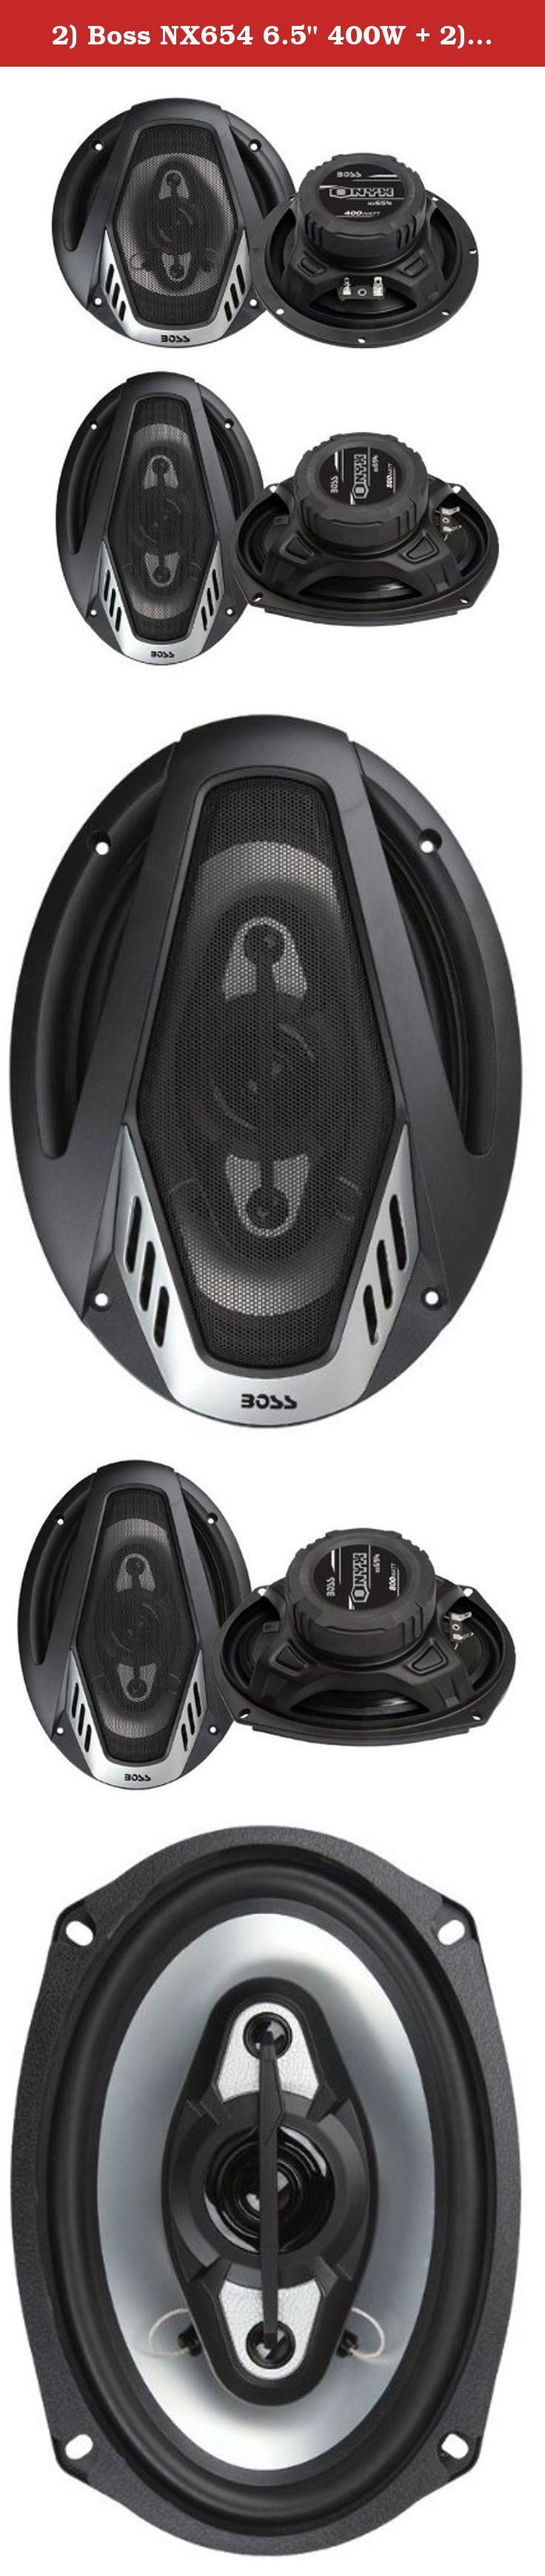 "2) Boss NX654 6.5"" 400W + 2) NX694 6x9"" 800W 4-Way Car Audio Coaxial Speakers. Package Includes: Boss NX654 6.5"" 400W 4-Way Car Speakers (1 pair) Boss NX694 6x9"" 800W 4-Way Car Speakers (1 pair) ----- The Boss NX654 6.5"" car audio 4-way speakers feature a MAX power of 400 watts at 4-ohm impedance. Other features include a stamped steel basket and a poly injection cone material with two Mylar cone tweeters. Replace your factory speakers with the Boss NX654 6.5"" 4-way speakers. The Boss…"